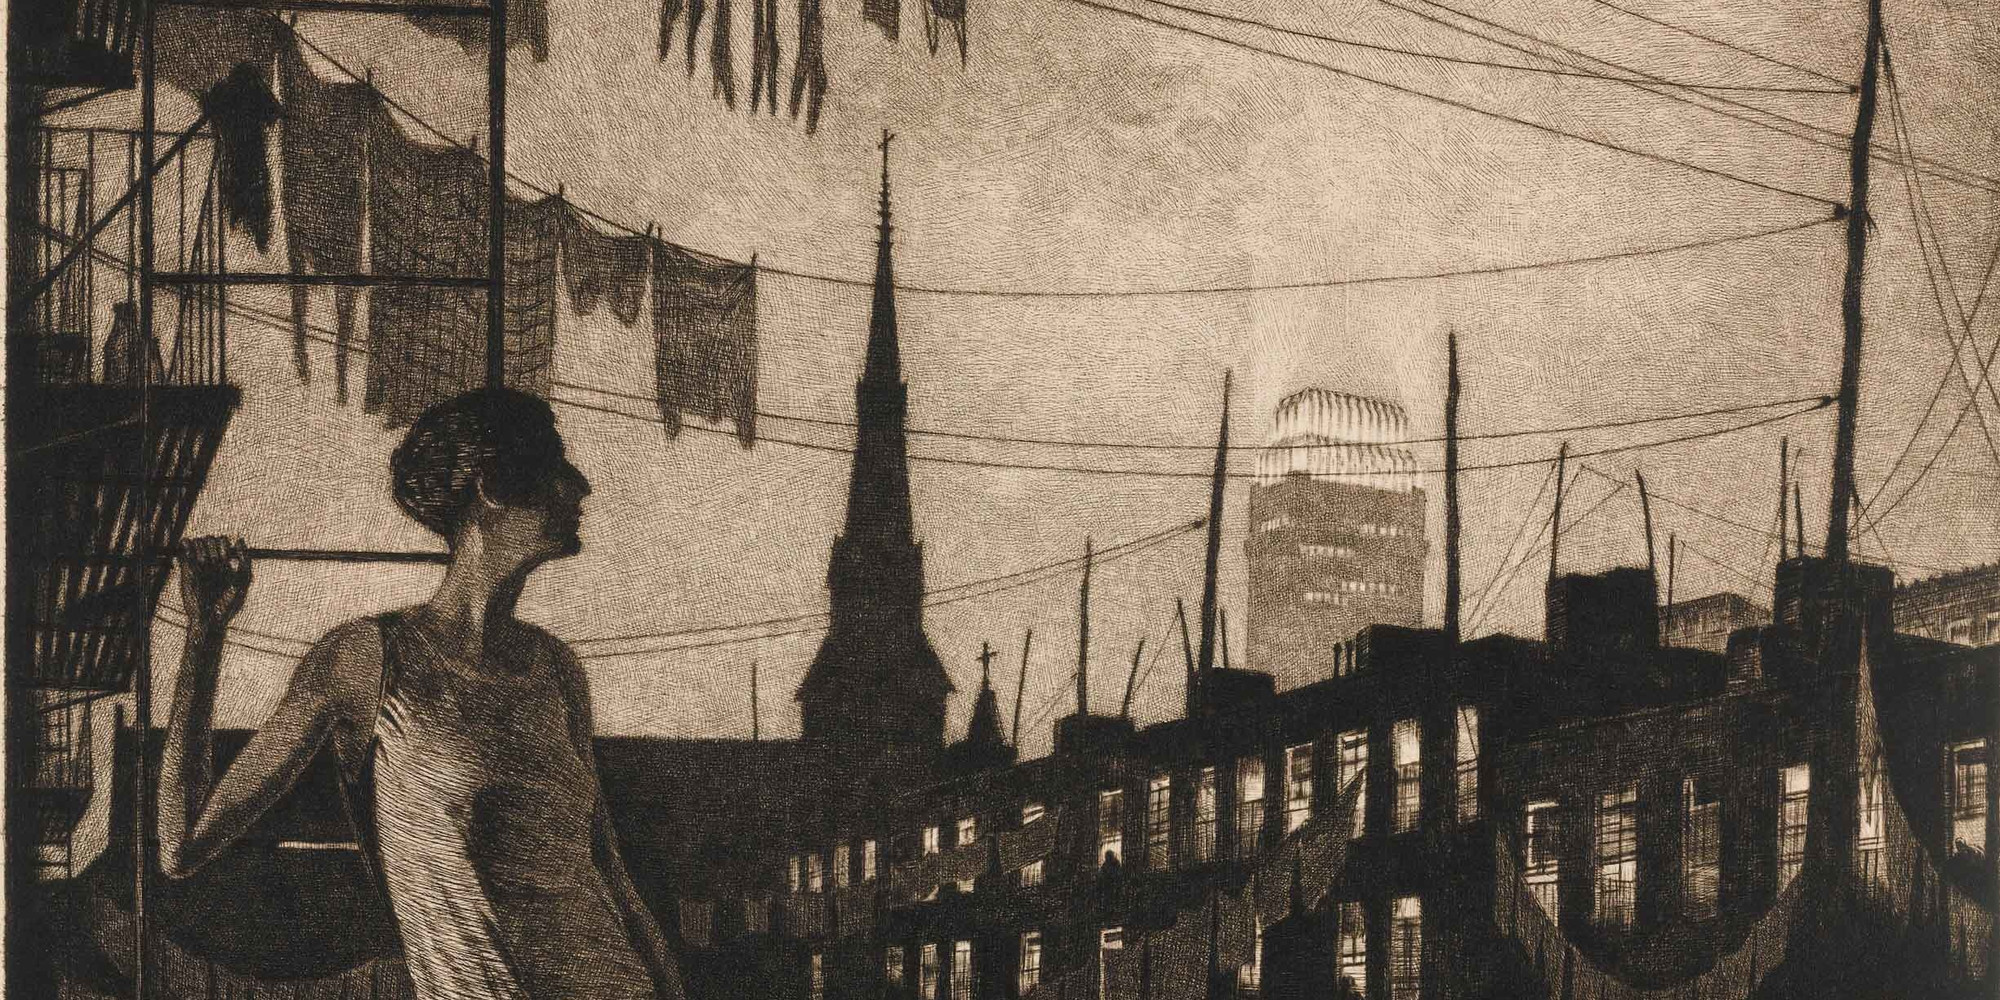 "Martin Lewis. The Glow of the City. 1929. Drypoint, plate: 11 7/16 × 14 7/16"" (29.1 × 36.6 cm); sheet: 14 5/16 × 18 7/8"" (36.3 × 47.9 cm). Publisher: unknown. Printer: Martin Lewis, New York. Edition: 106. Purchase. © The Estate of Martin Lewis"